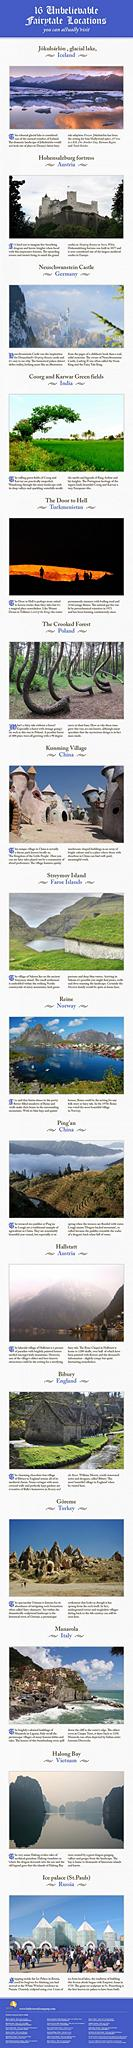 16-fairytale-locations-you-can-actually-visit-thumbnail_537b13200a7e8_w1500.png